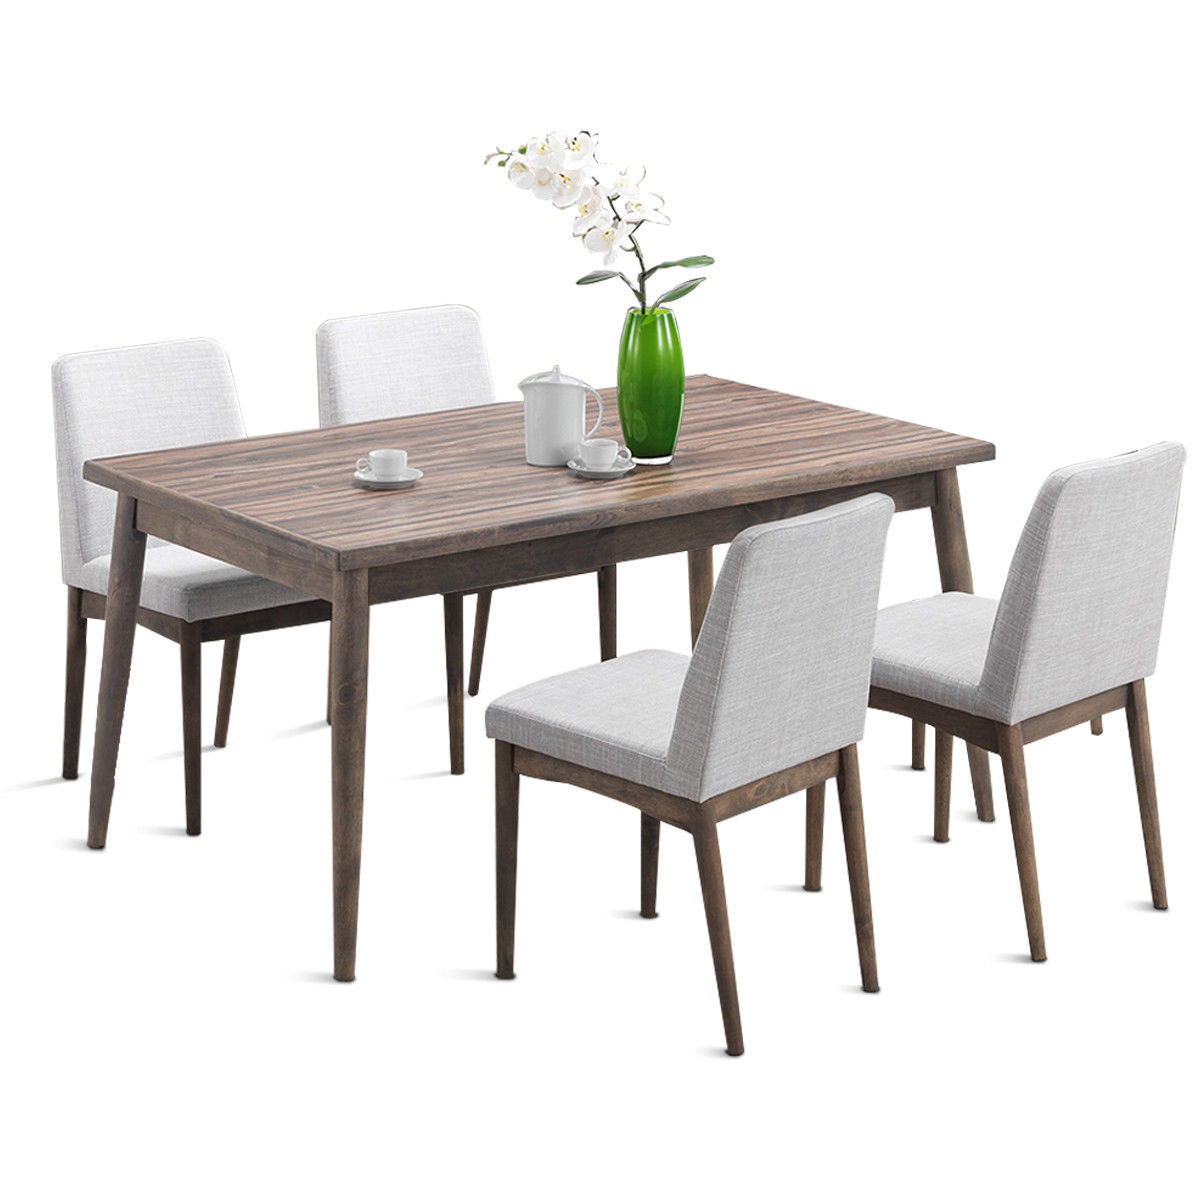 Allmodern Throughout Liles 5 Piece Breakfast Nook Dining Sets (#2 of 20)